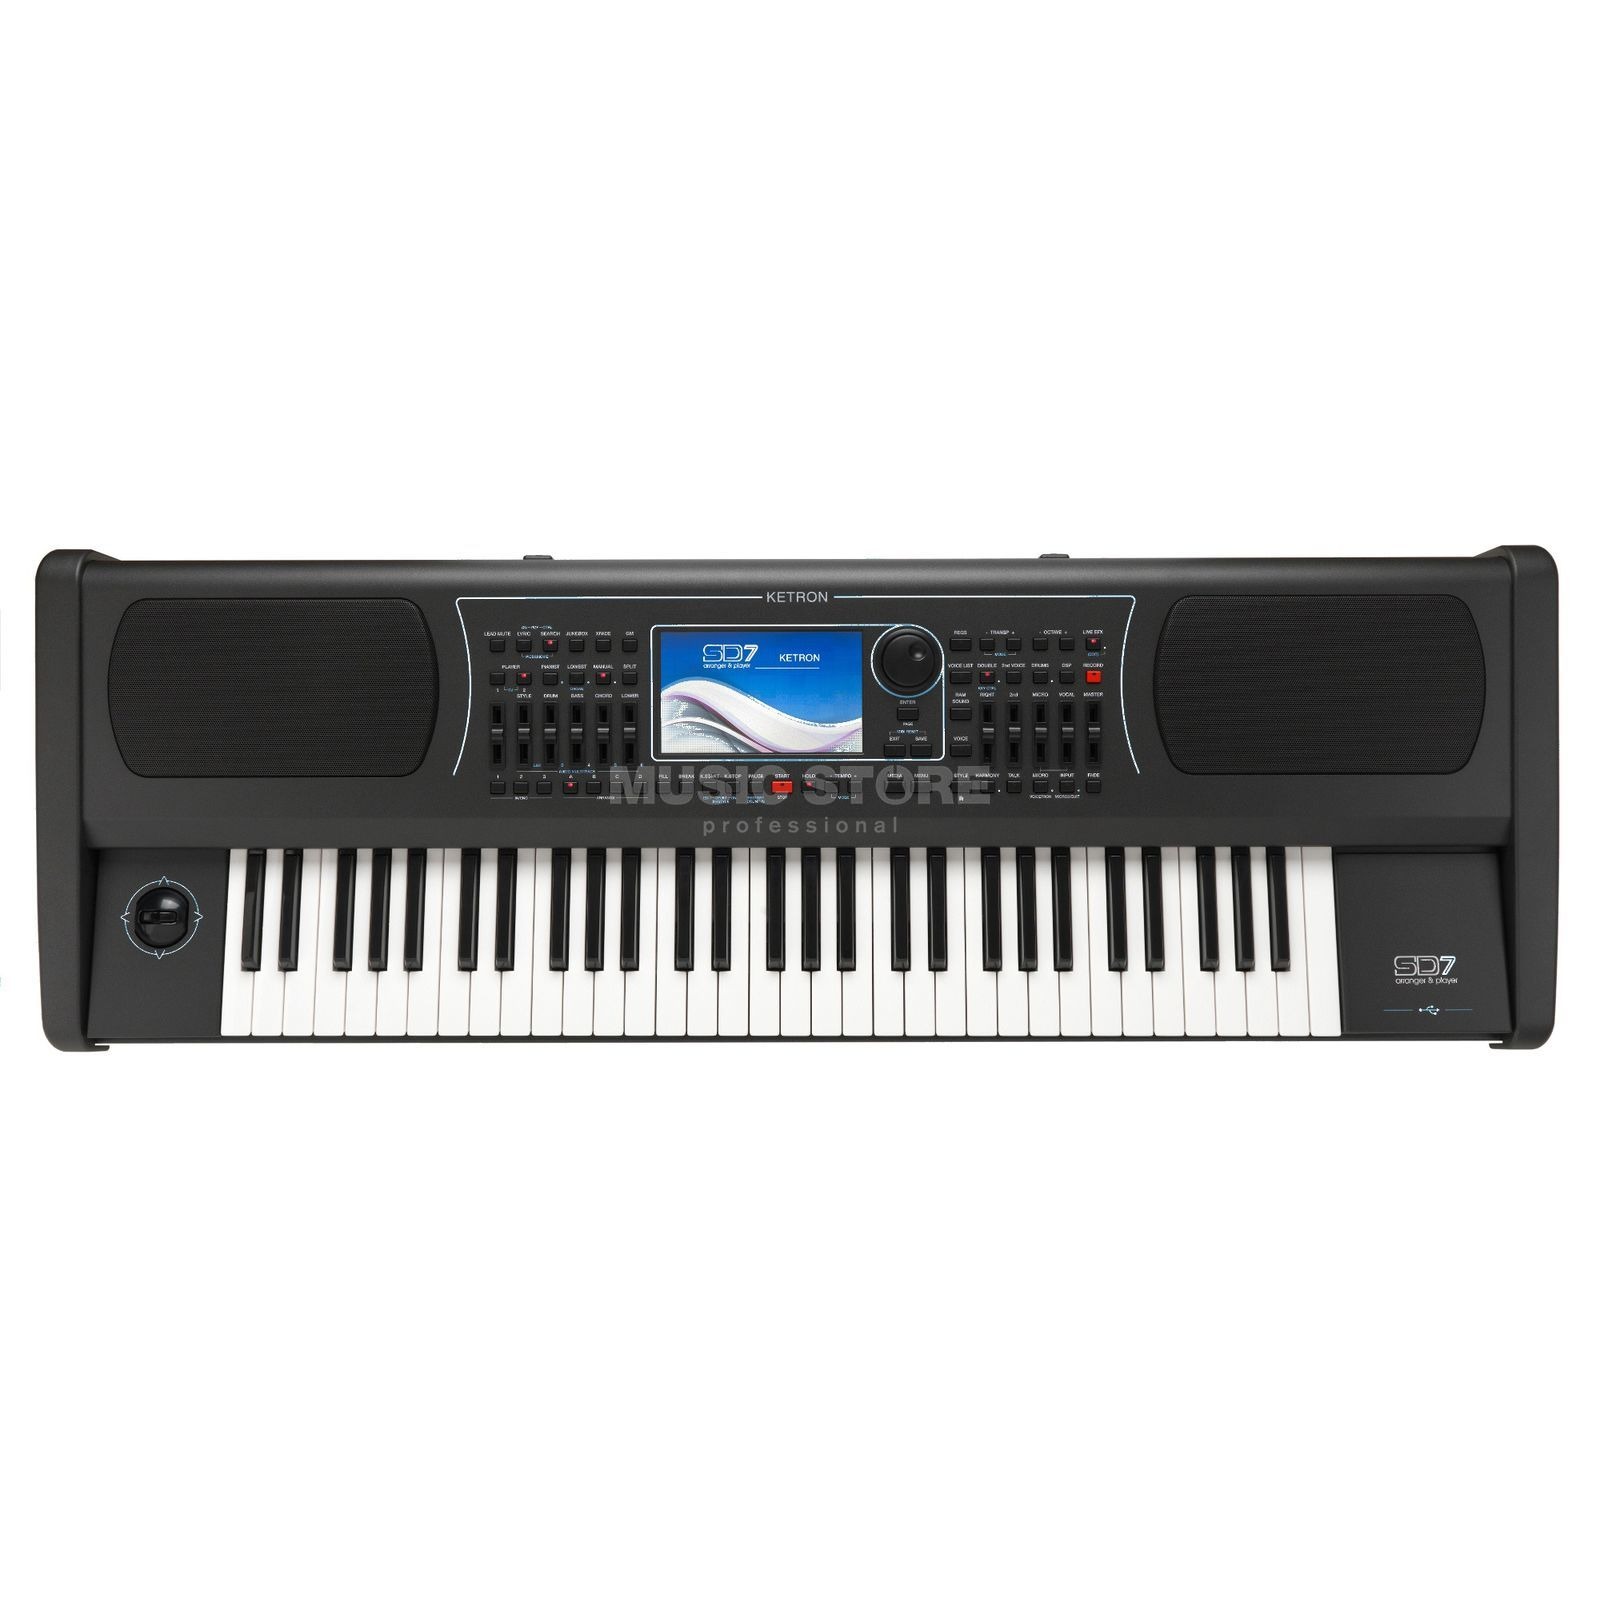 Ketron Ketron SD-7 Entertainer Keyboard Produktbillede